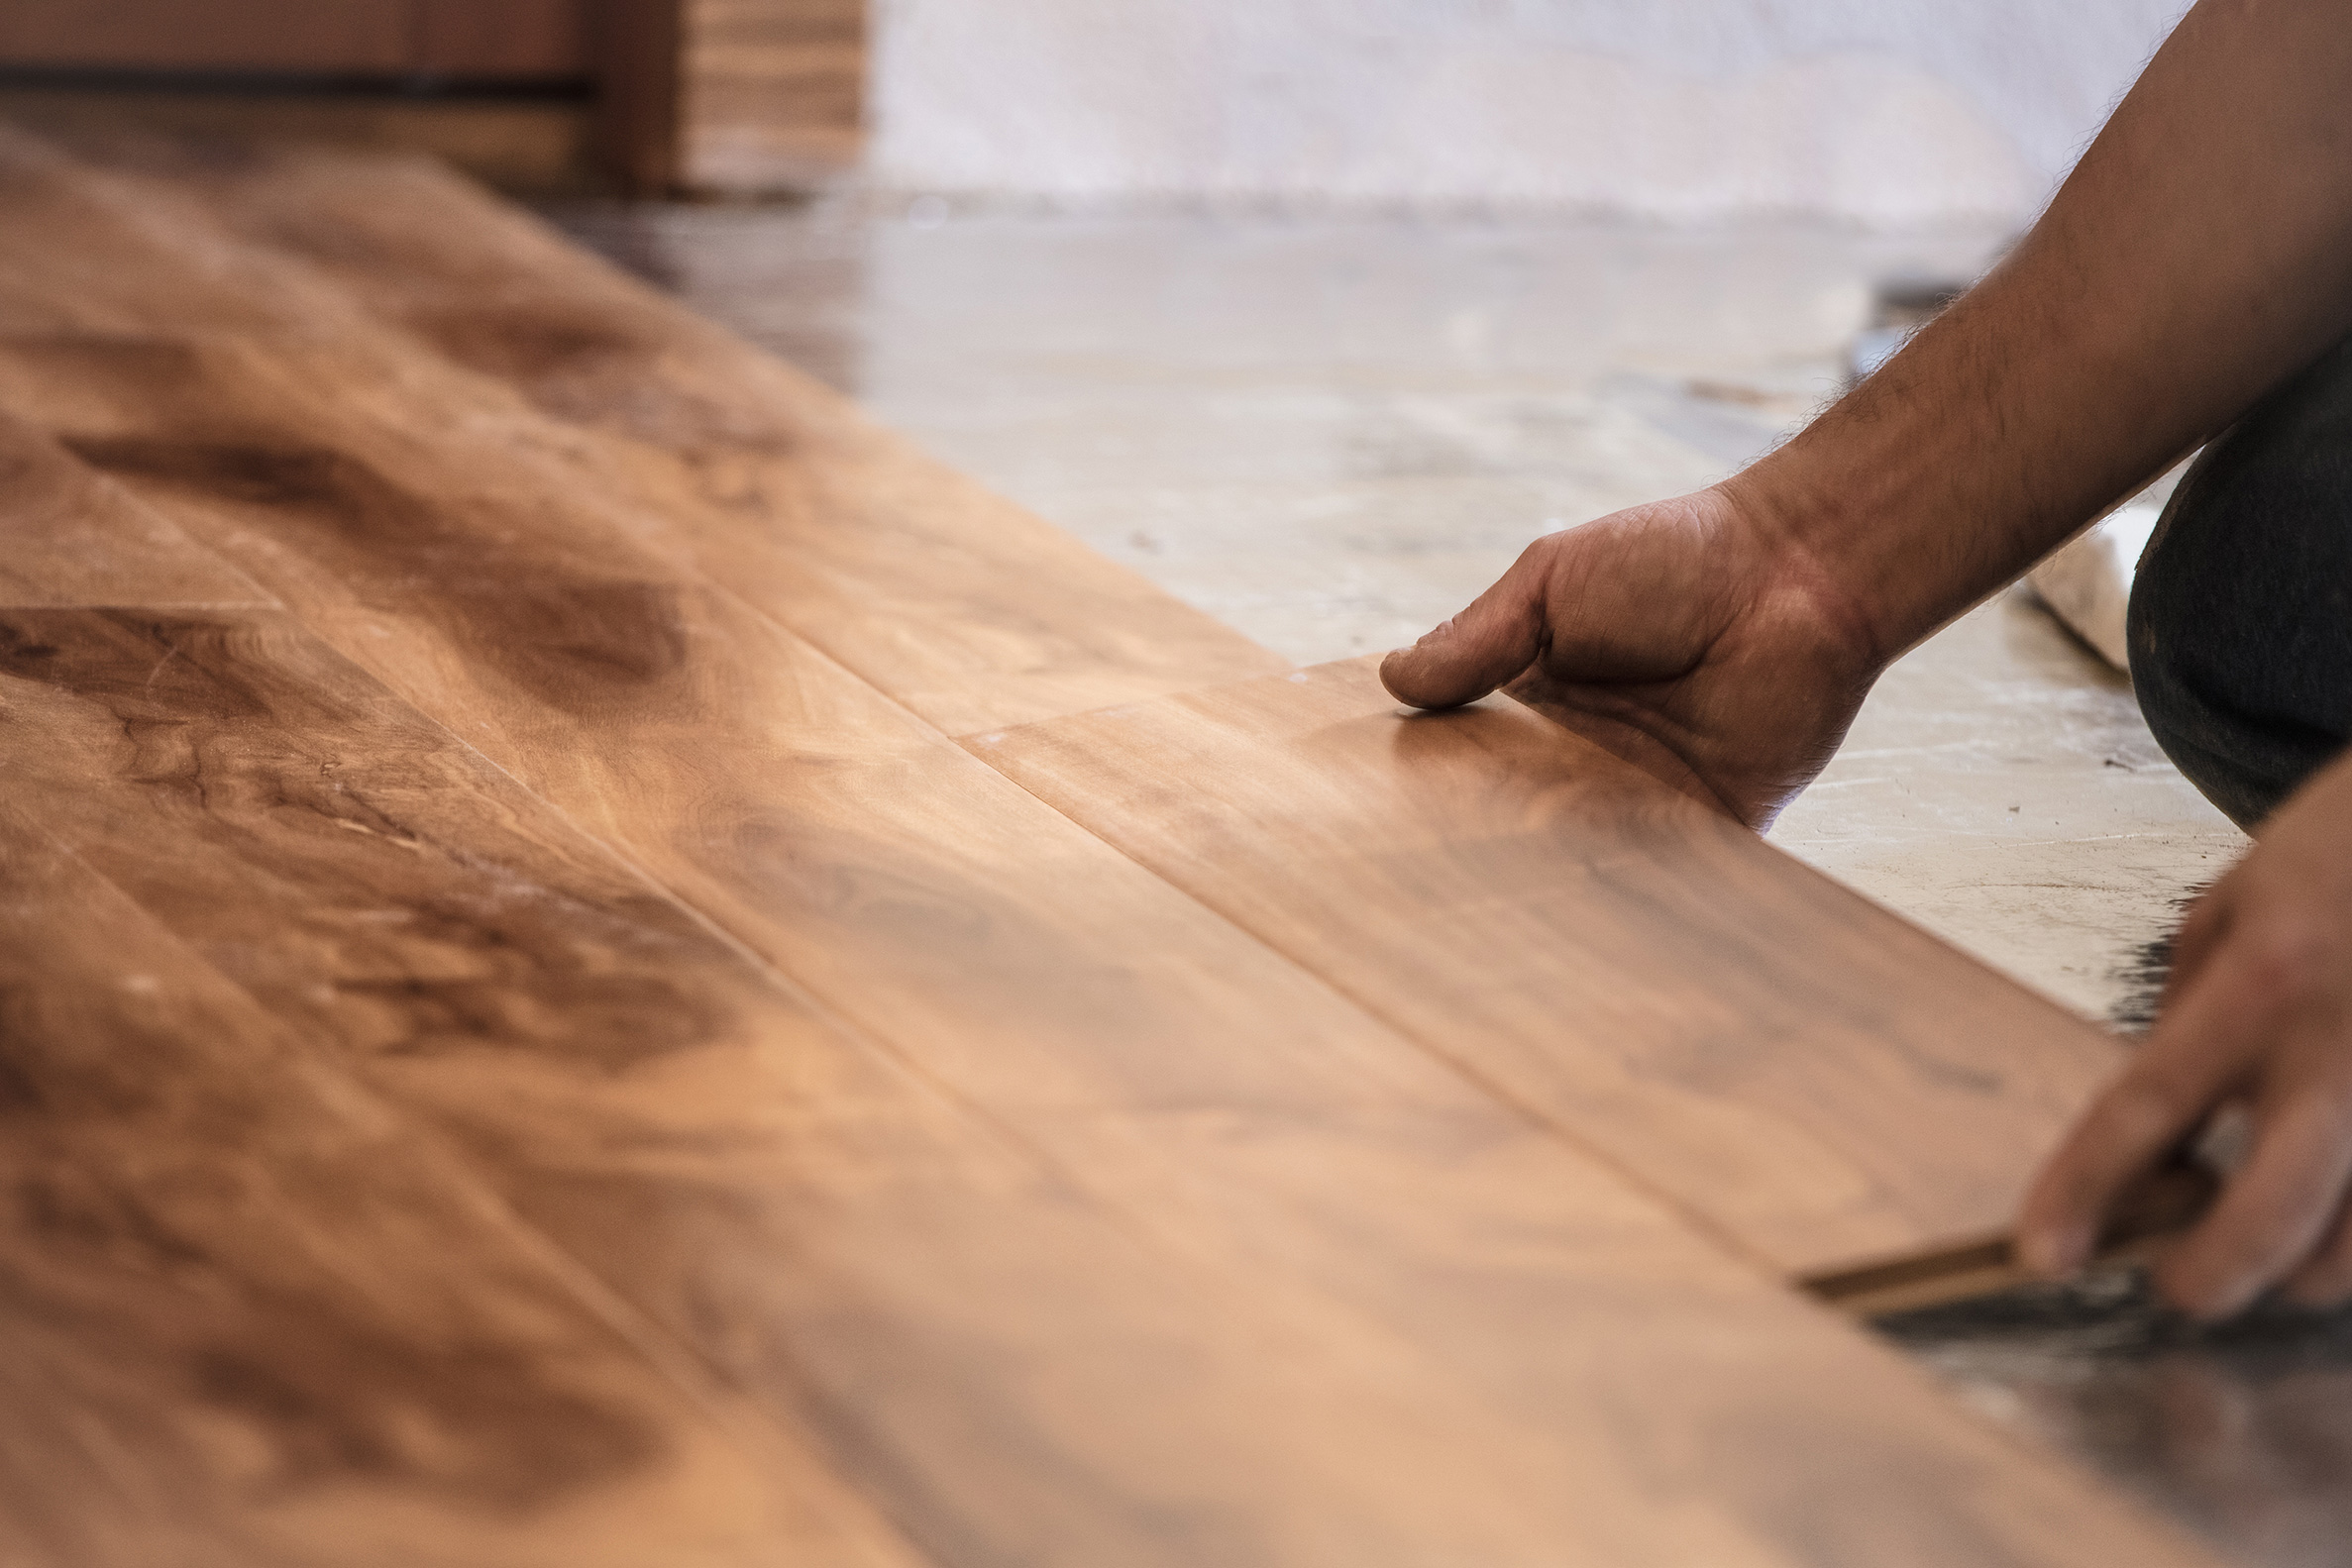 Flooring solutions to protect and maintain busy floors